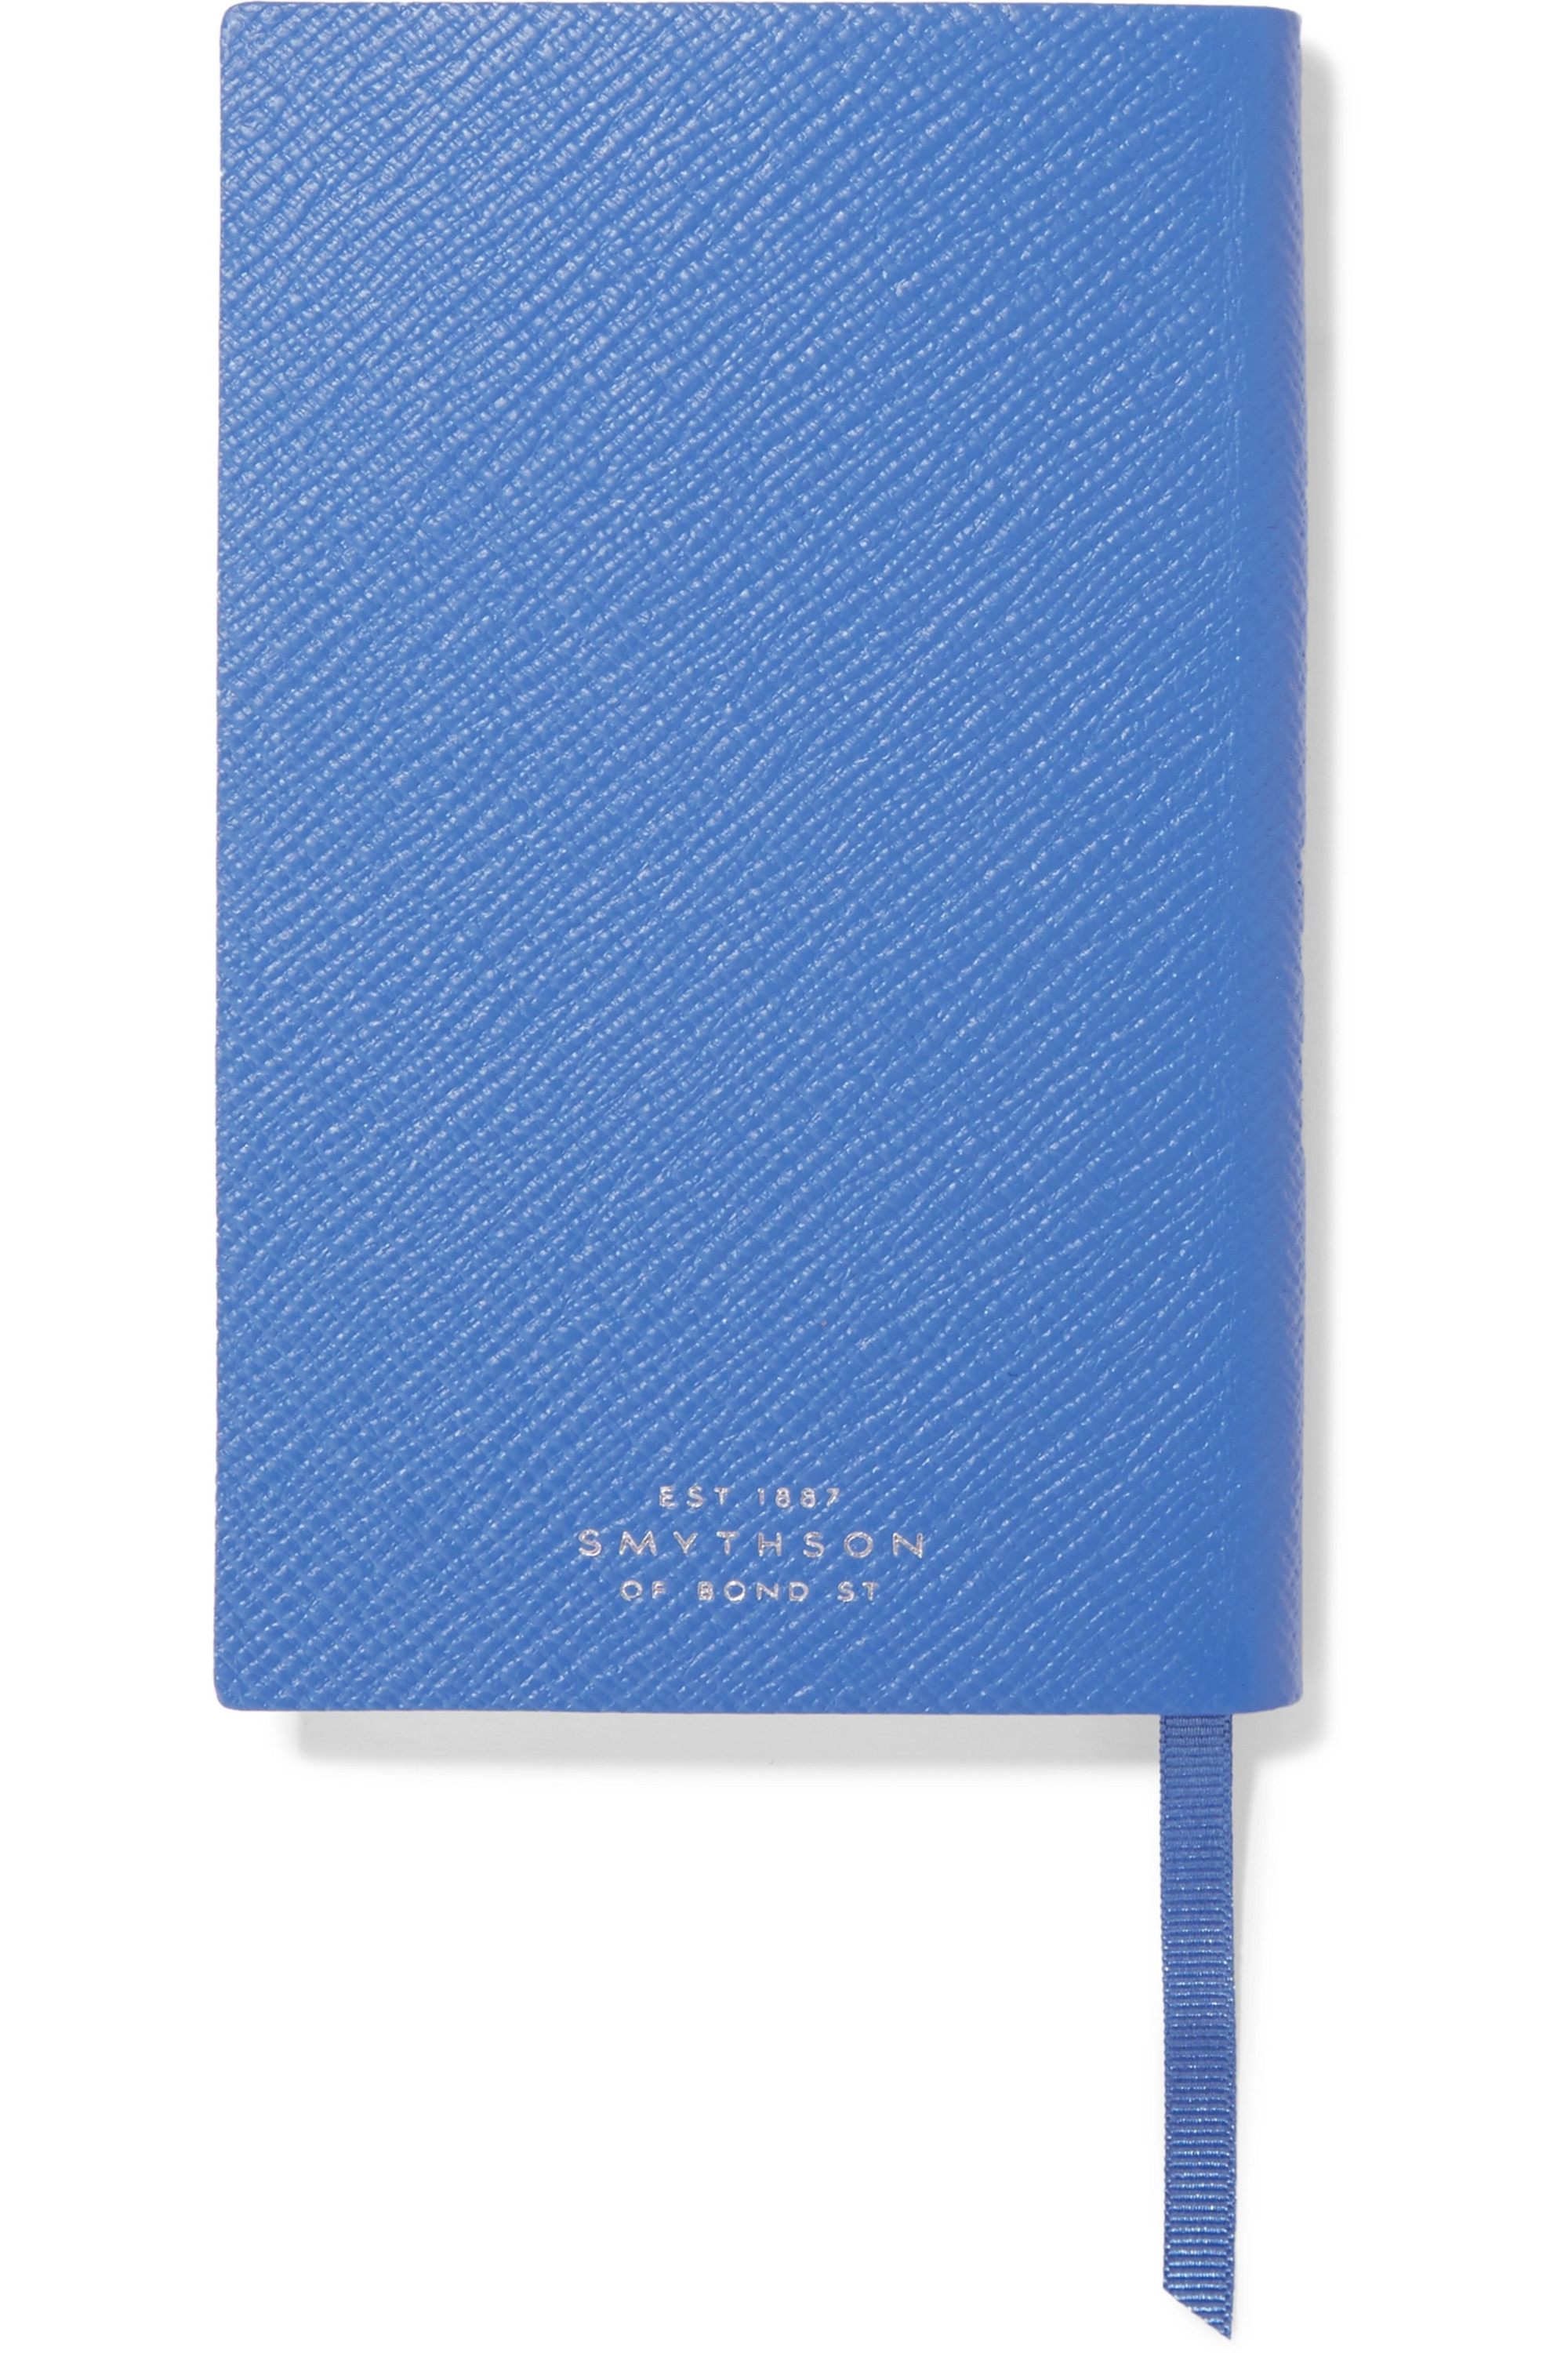 Smythson Panama Travels and Experiences Notizbuch aus strukturiertem Leder